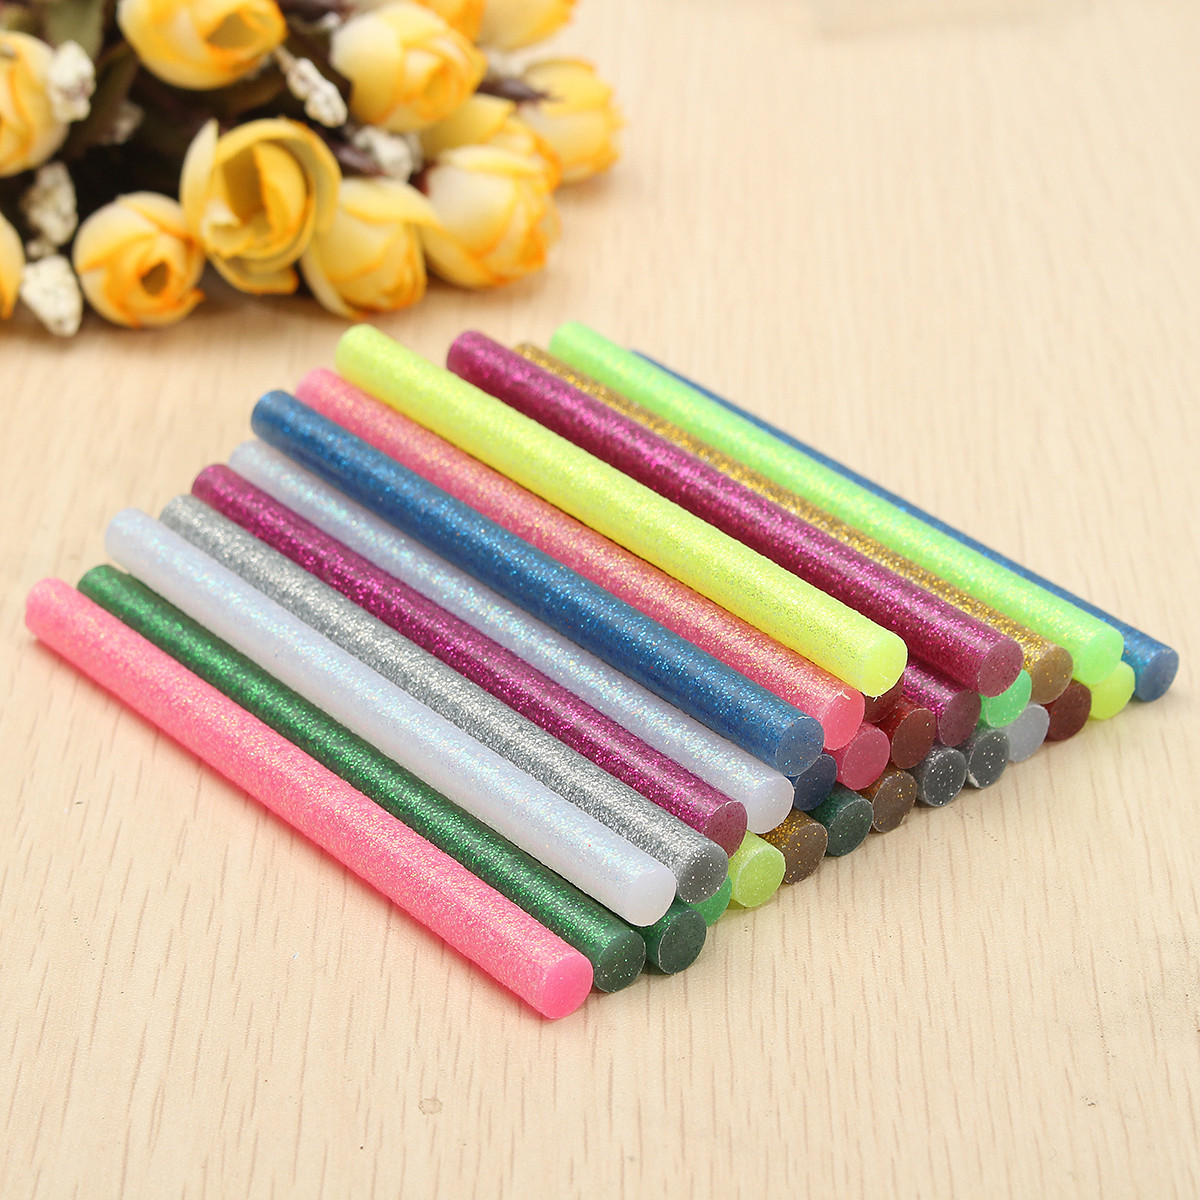 60//90Pcs Multicolor Glitter Hot Melt Glue Adhesive Sticks Craft Handicraft Art